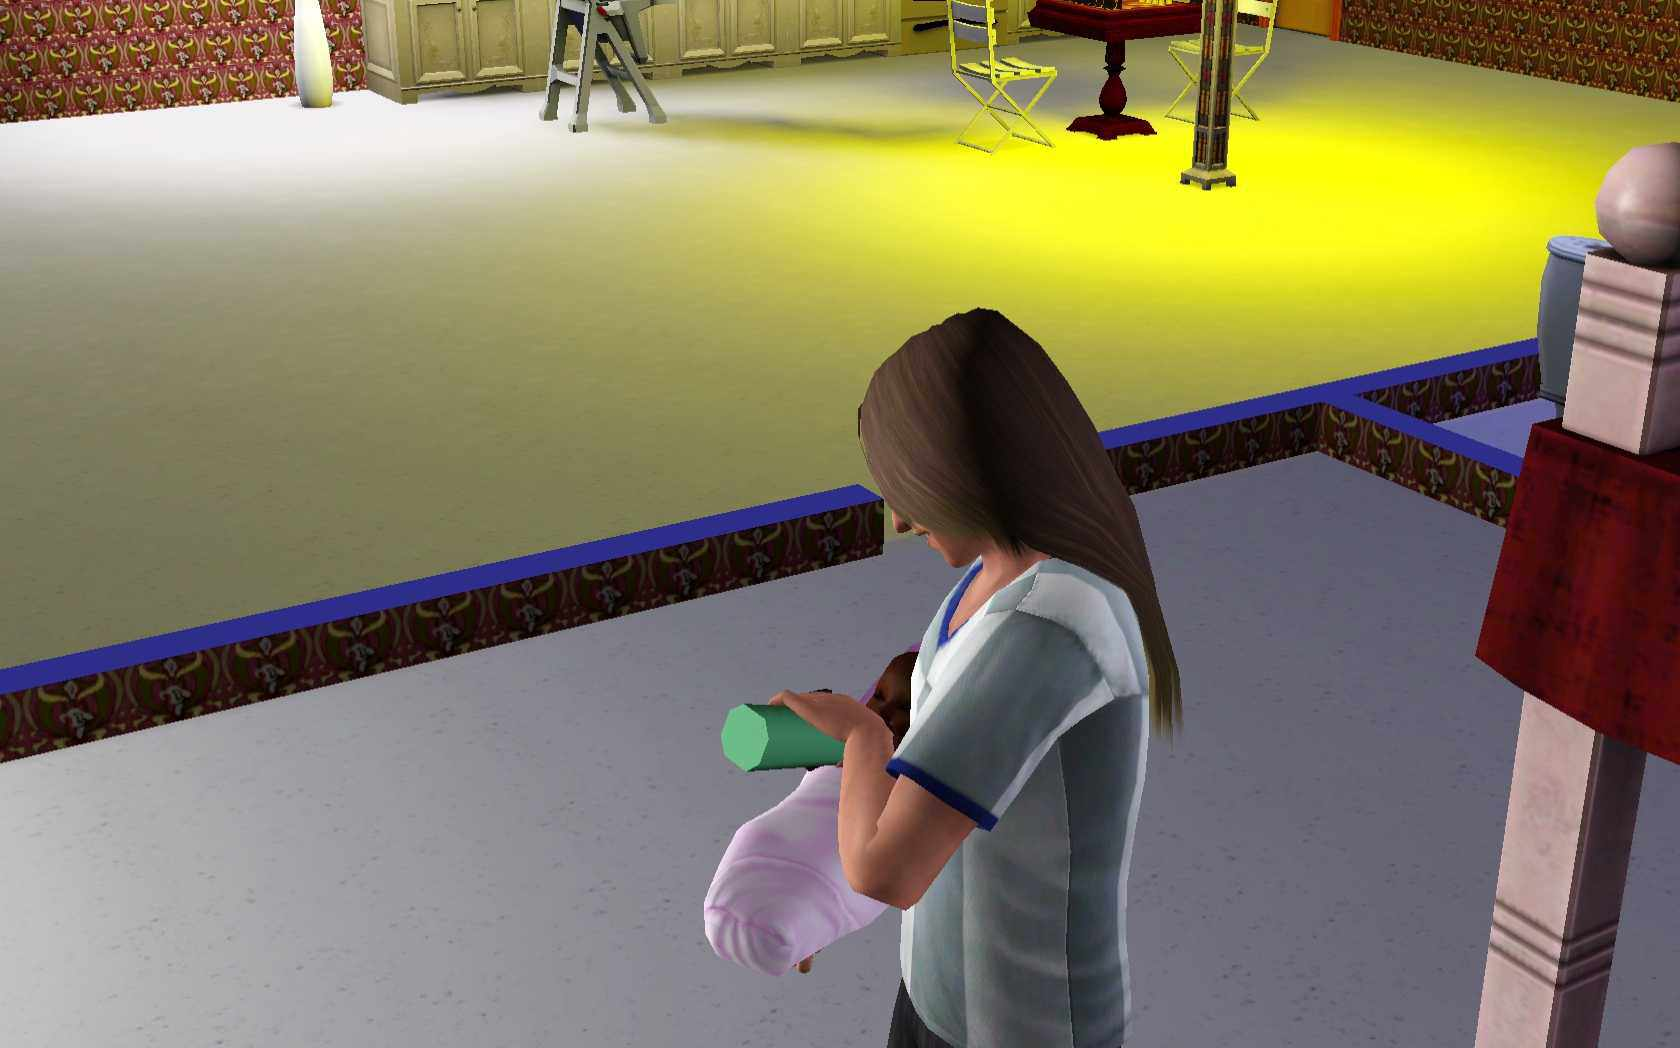 Sims 3 Parenting  Feed the Baby. The Sims 3 Baby and Toddler Guide